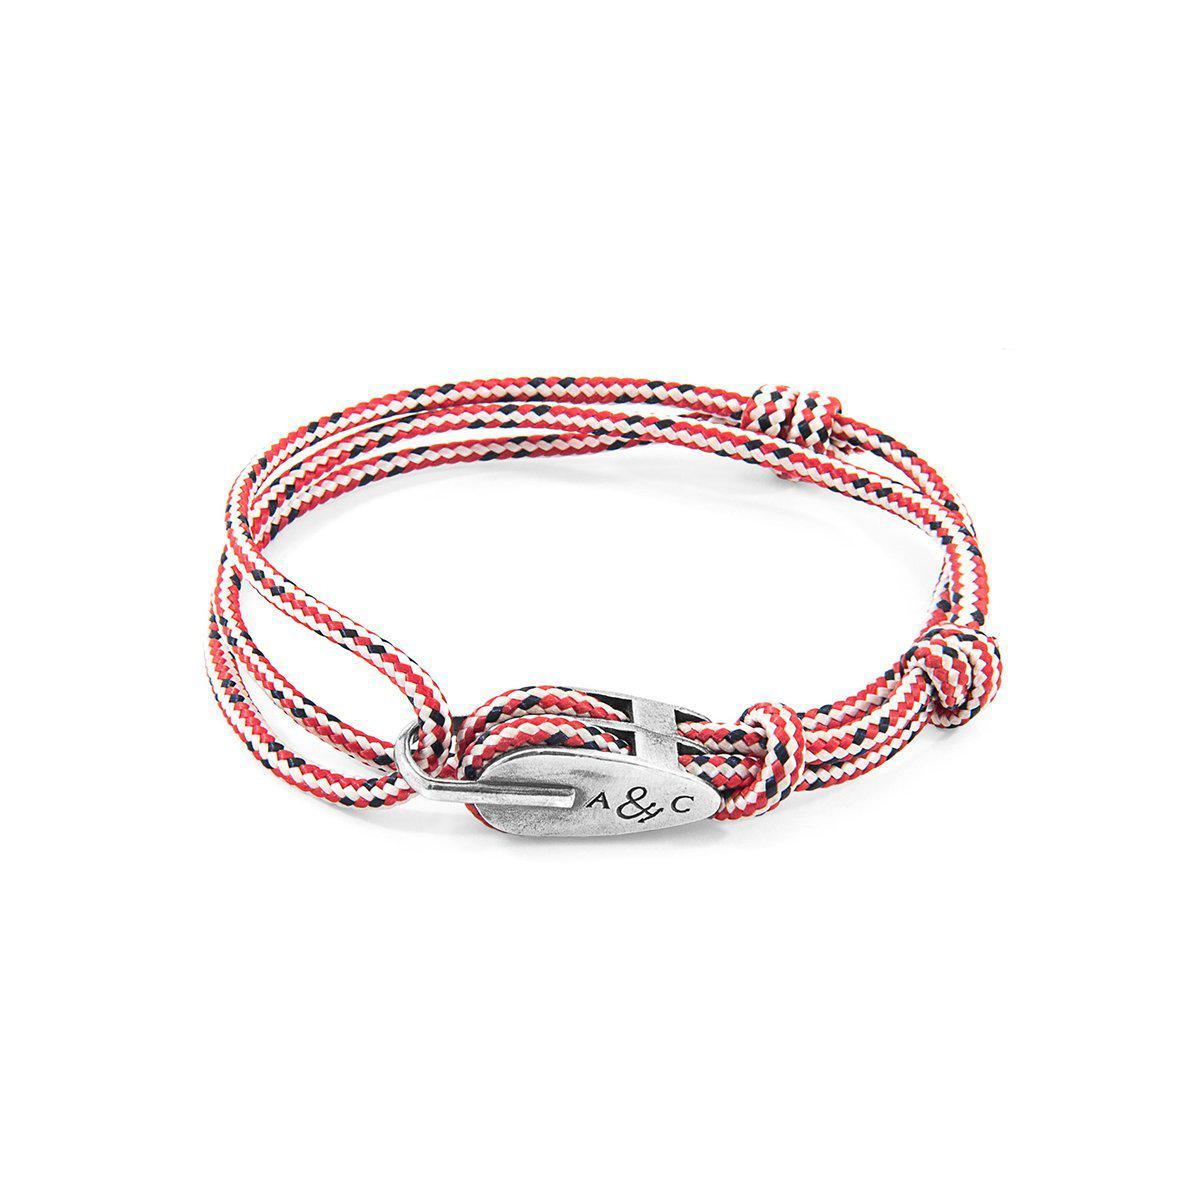 Anchor & Crew Red Dash Tyne Silver And Rope Bracelet xntxgR6XM